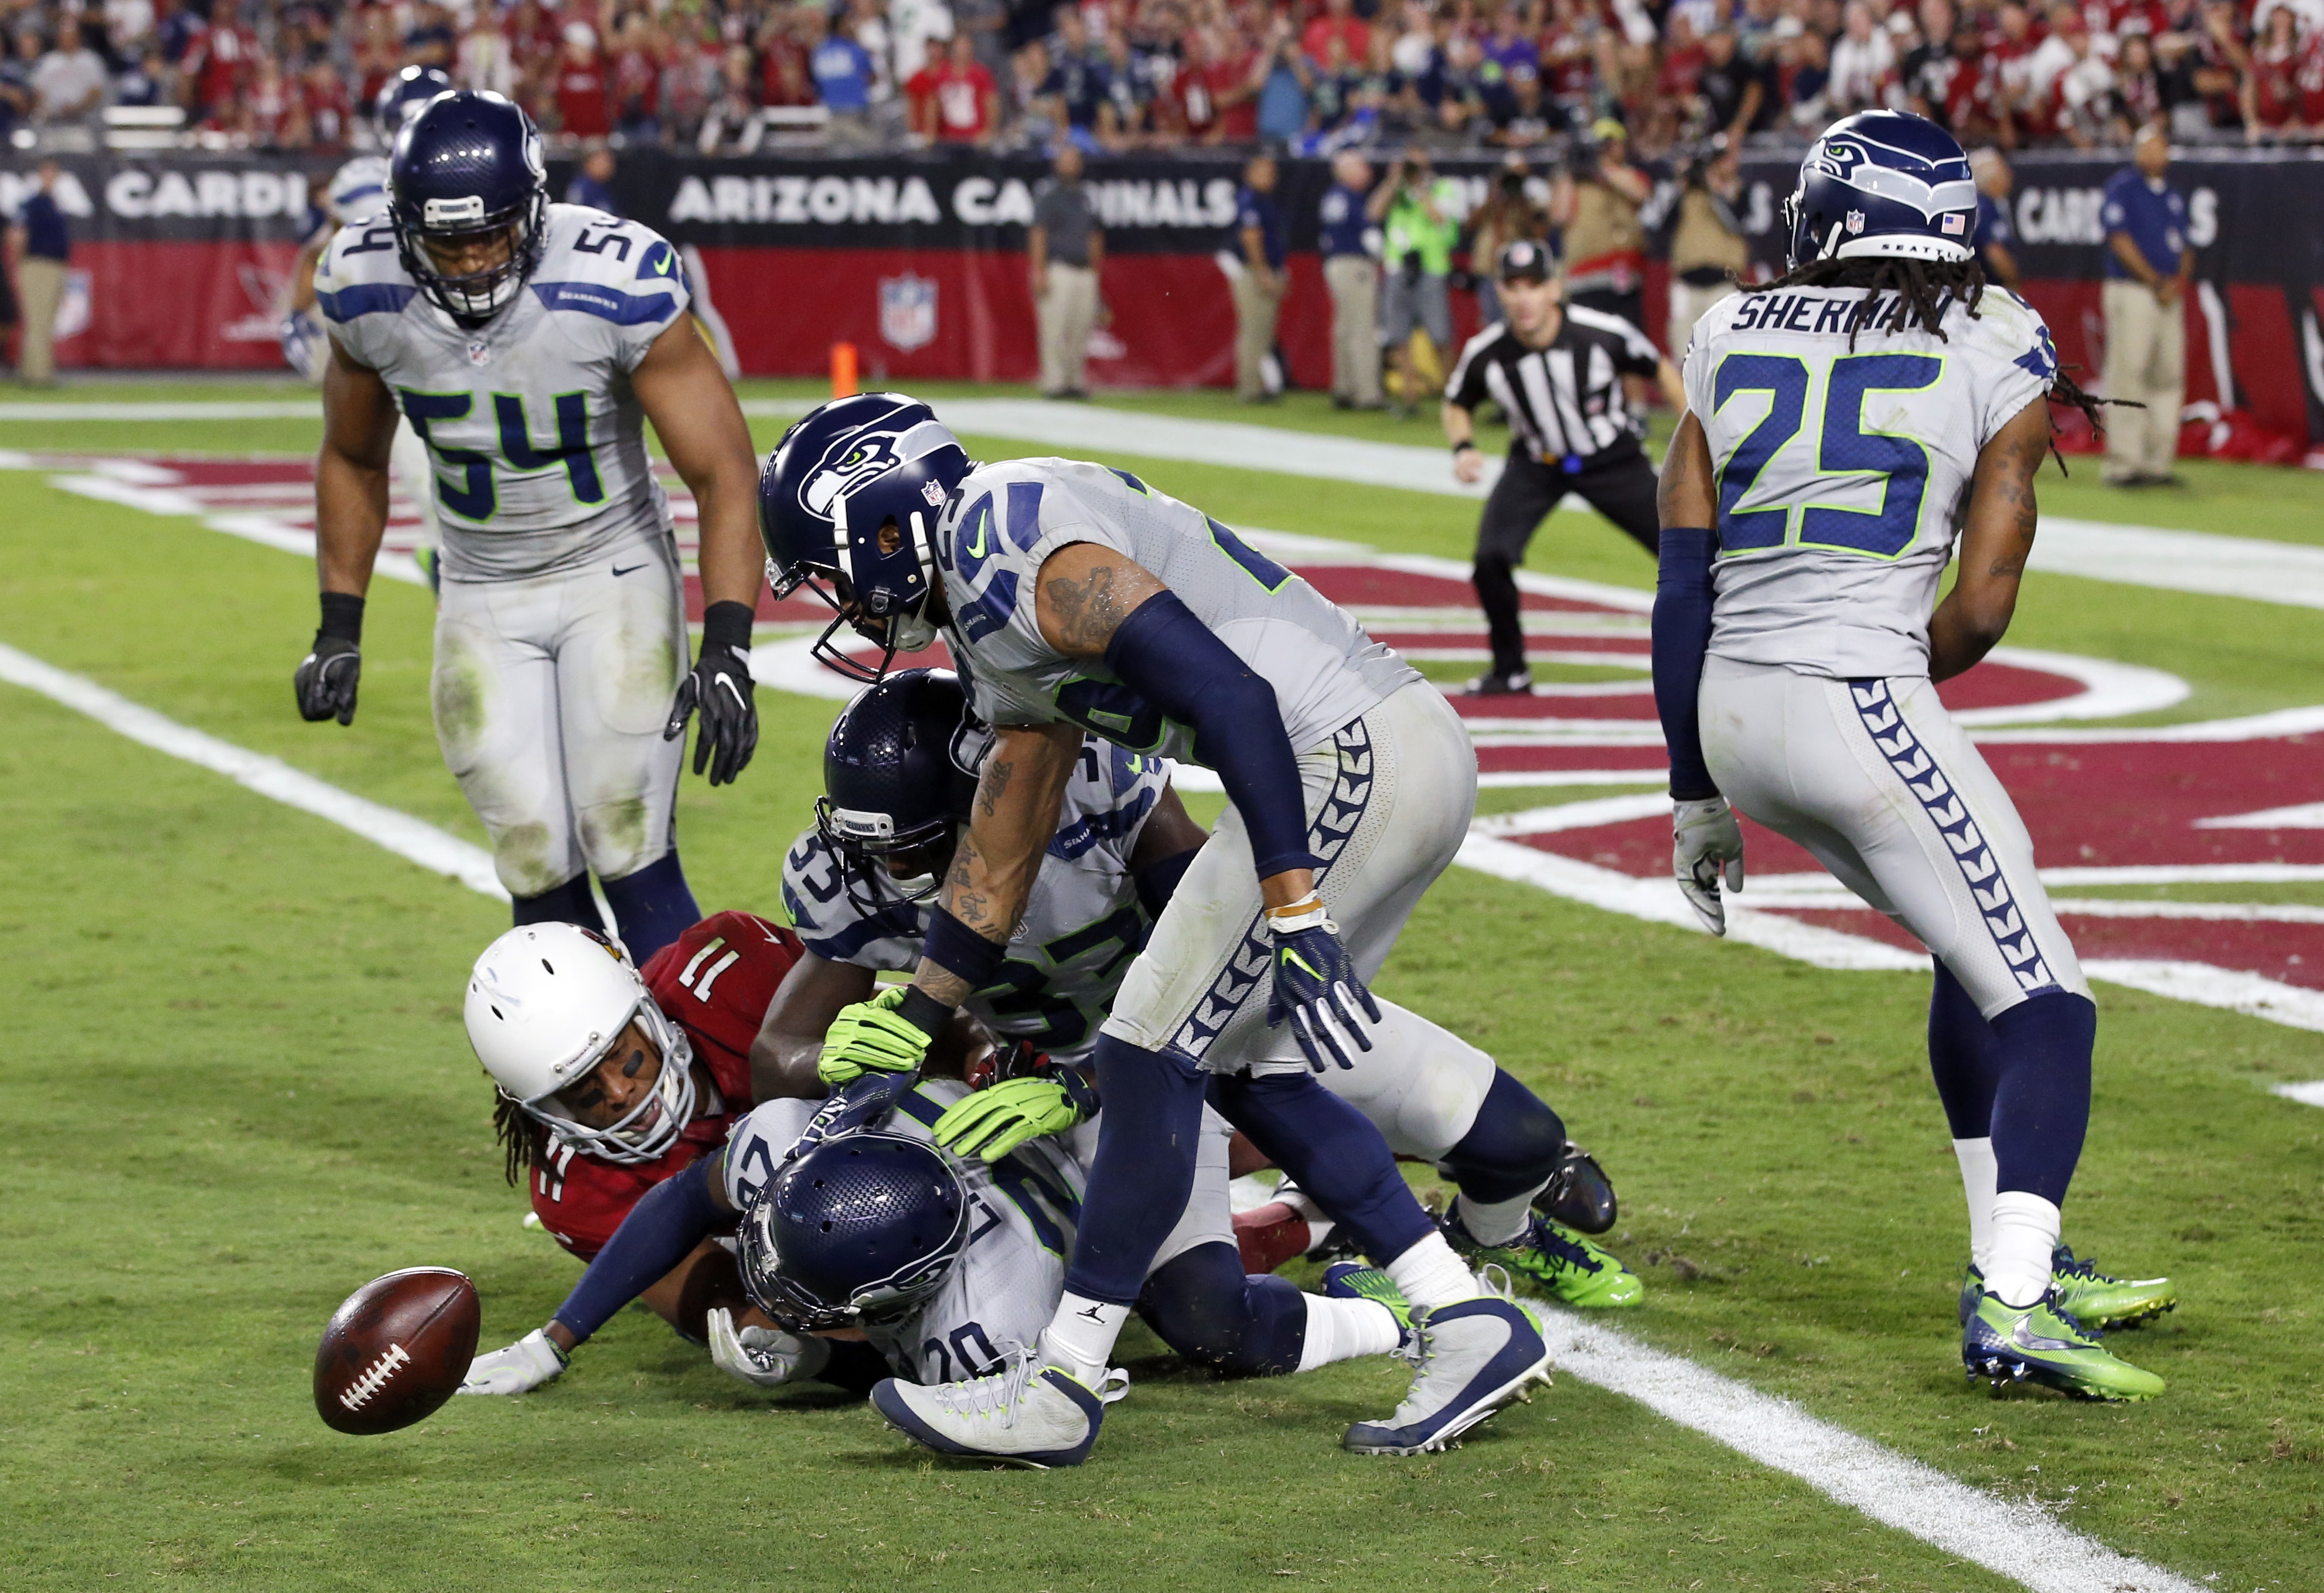 Seattle Seahawks cornerback Richard Sherman (25), free safety Earl Thomas (29), middle linebacker Bobby Wagner (54) strong safety Kelcie McCray (33) and cornerback Jeremy Lane (20) knock the ball away from Arizona Cardinals wide receiver Larry Fitzgerald